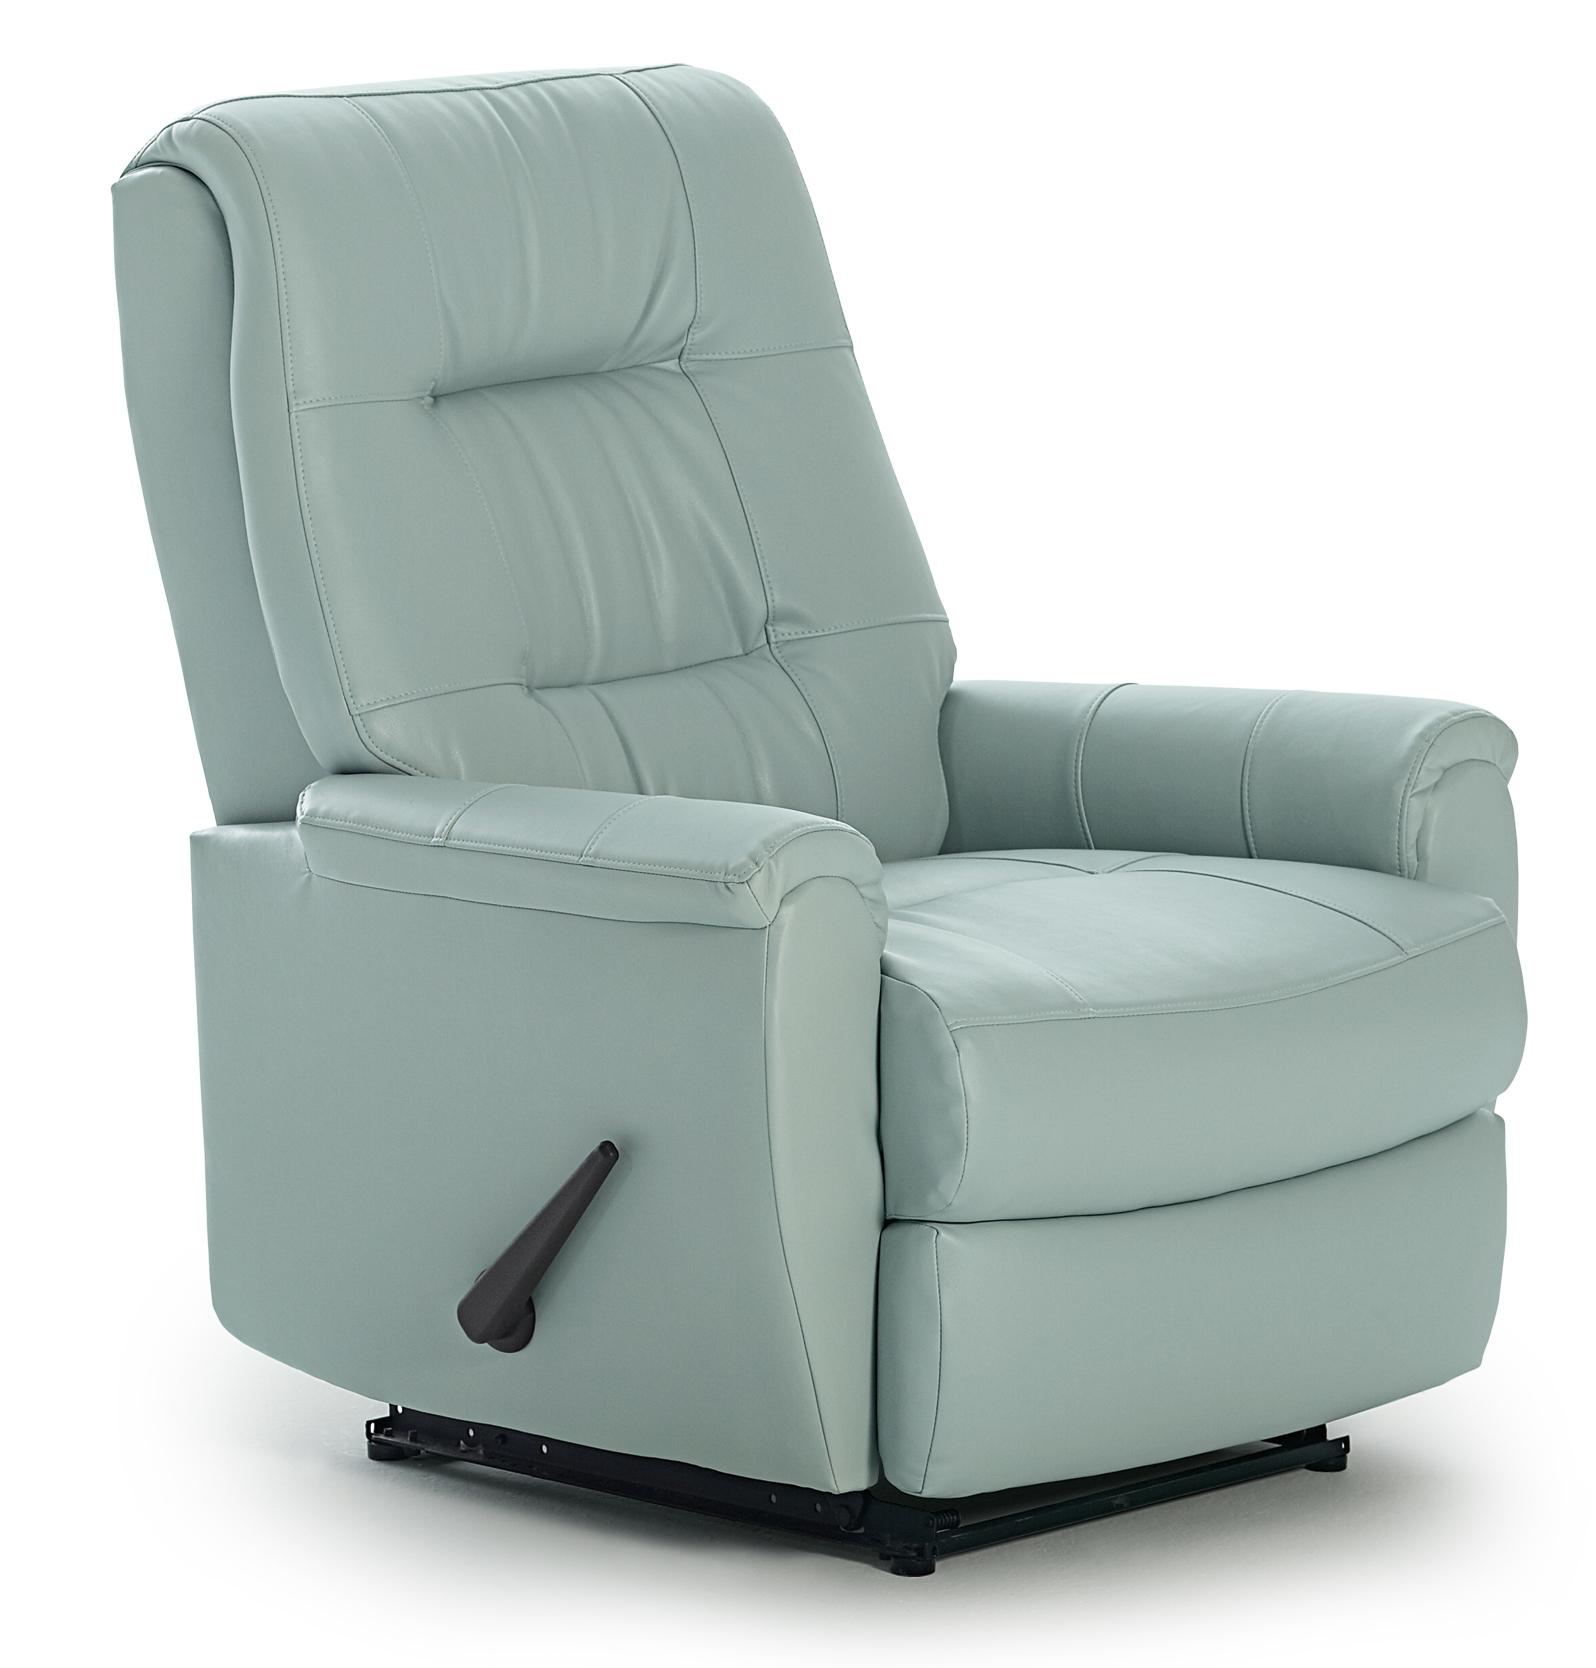 Chair Leather Reclining Swivel Petite Recliners Felicia Swivel Glider Recliner With Button Tufted Back By Best Home Furnishings At Lapeer Furniture Mattress Center